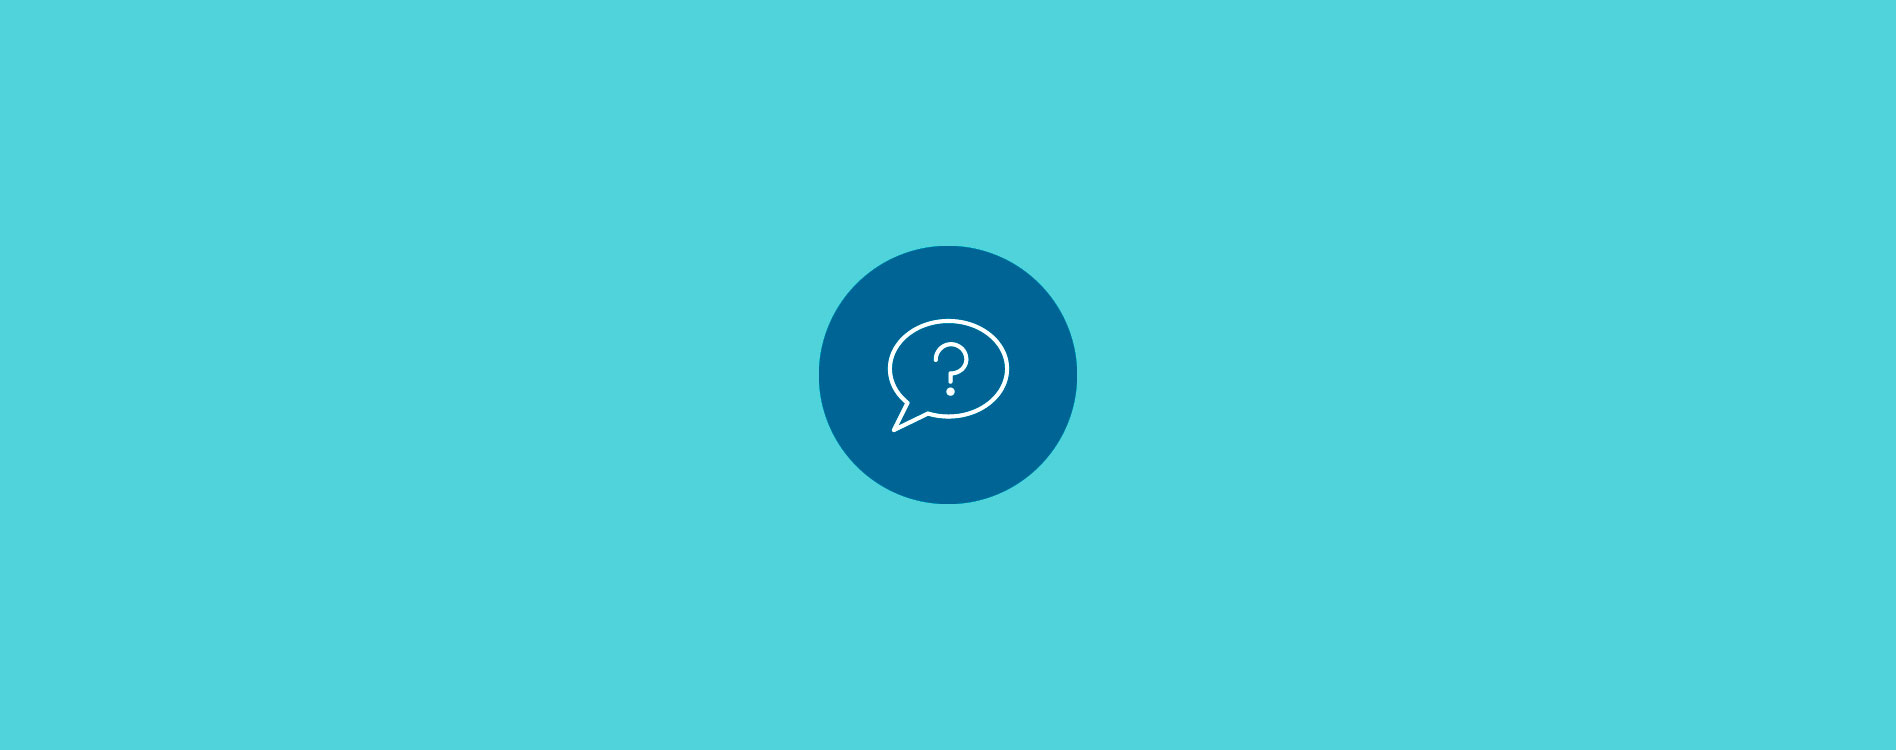 3 ways quizzes can help your marketing